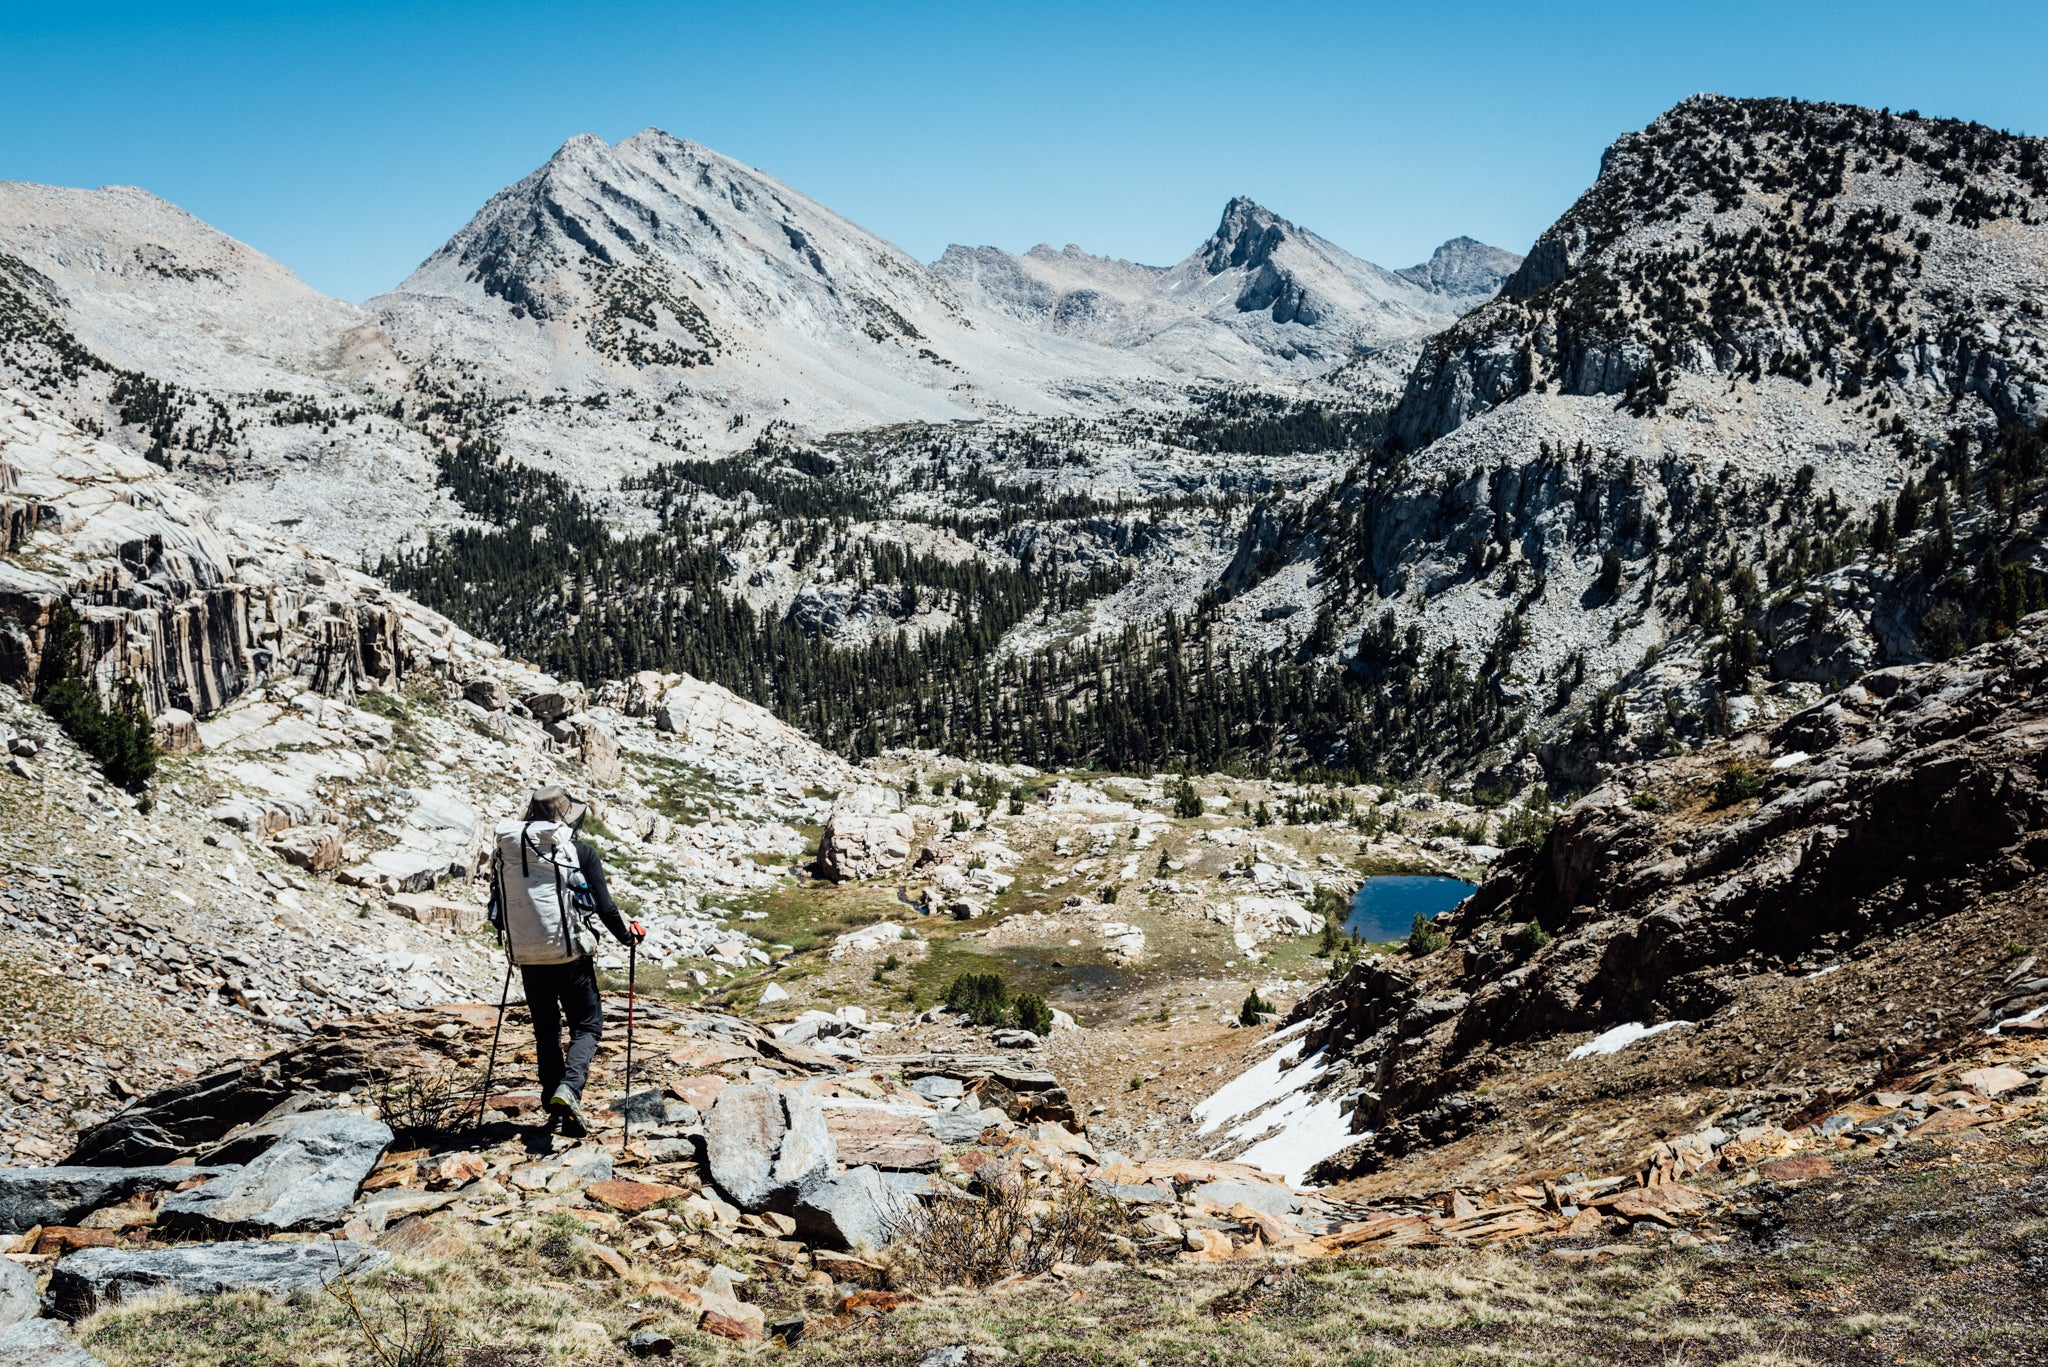 The Hardest Hike In America? We Backpack The Sierra High Route